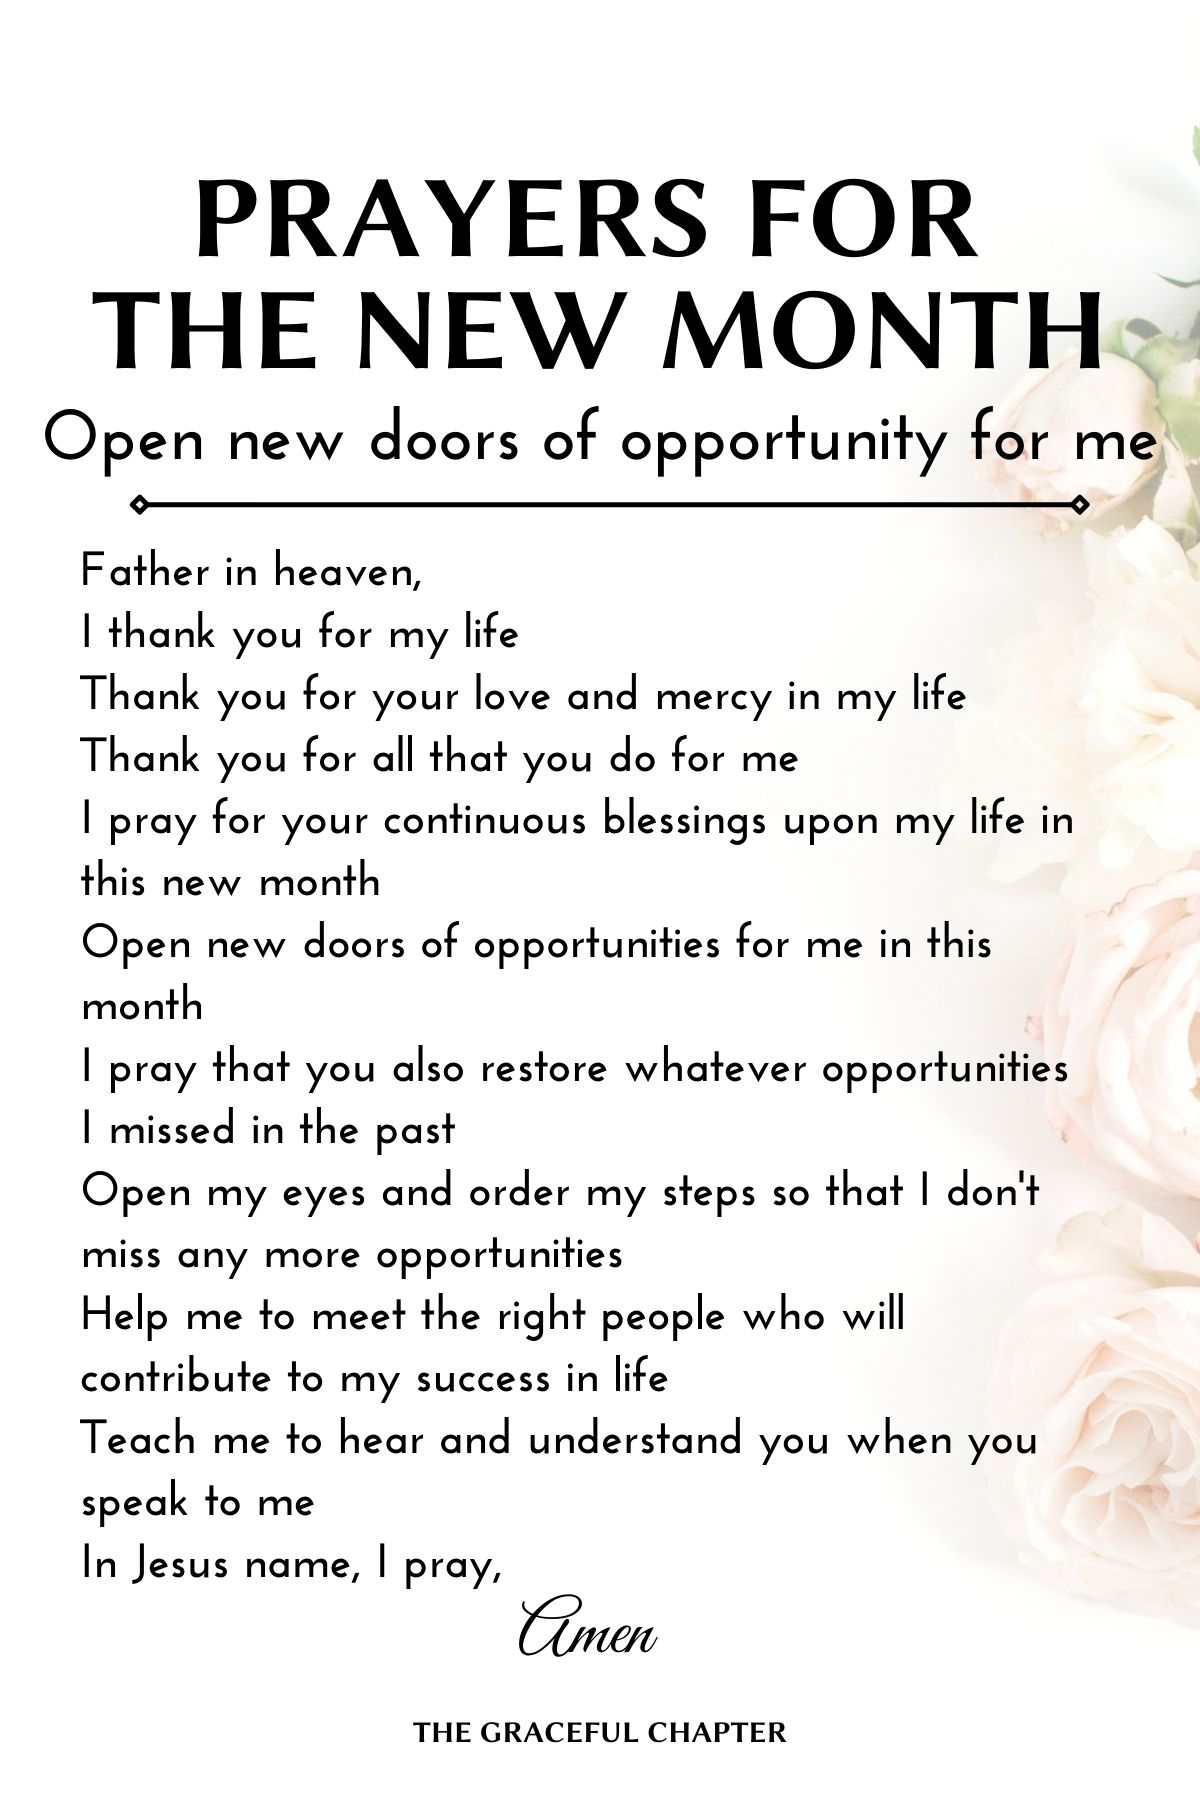 Open new doors of opportunity for me